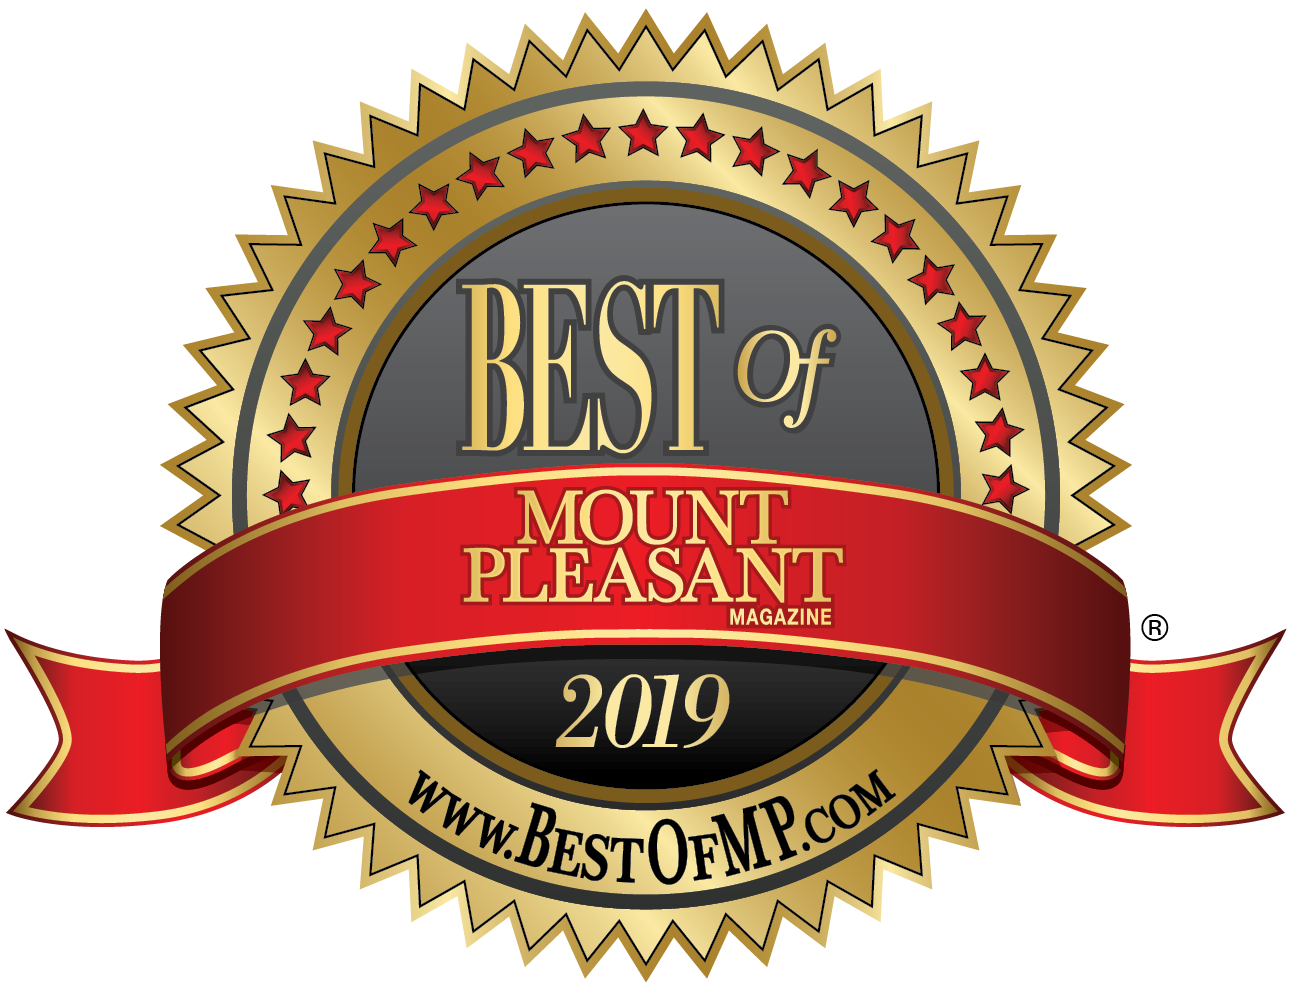 Best Of Mount Pleasant 2019 logo - Large, Transparent background, 300dpi